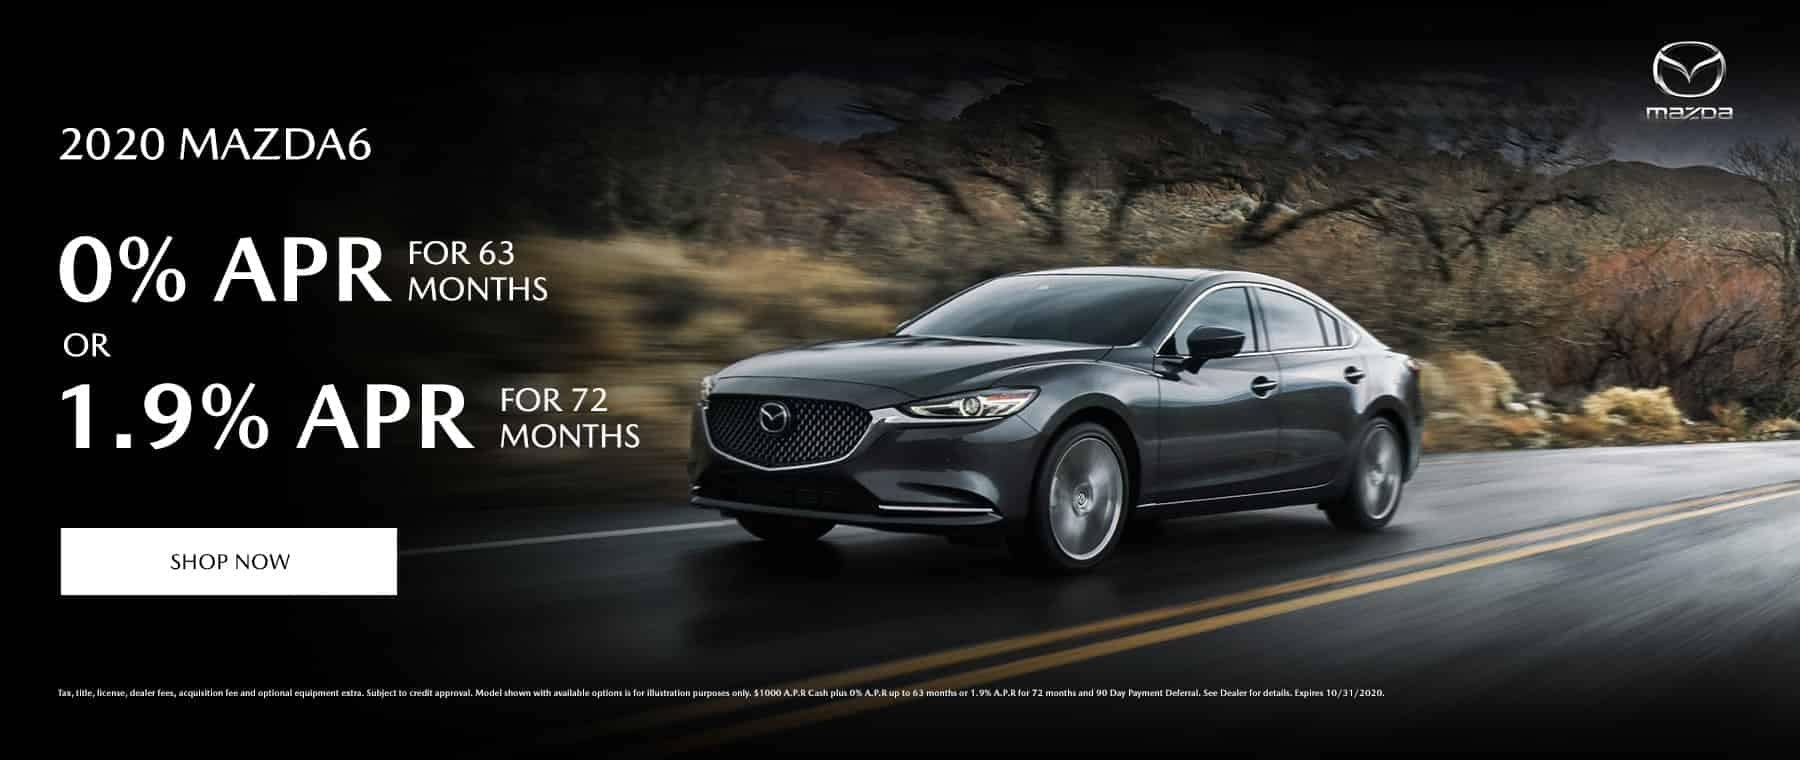 0% for 63 months or 1.9% for 72 months on a 2020 Mazda6